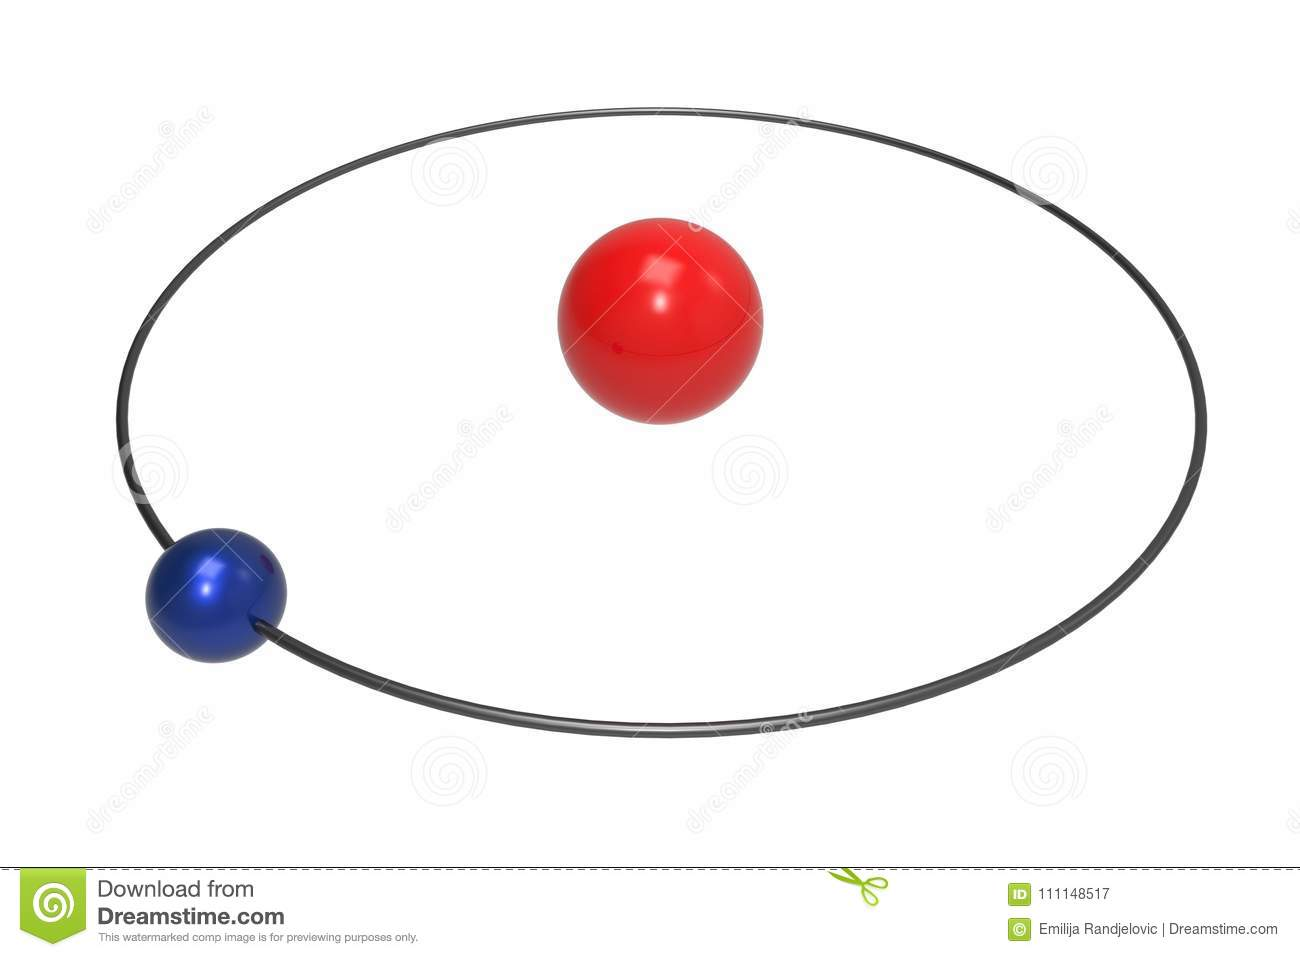 Bohr Model Of Hydrogen Atom With Proton Neutron And